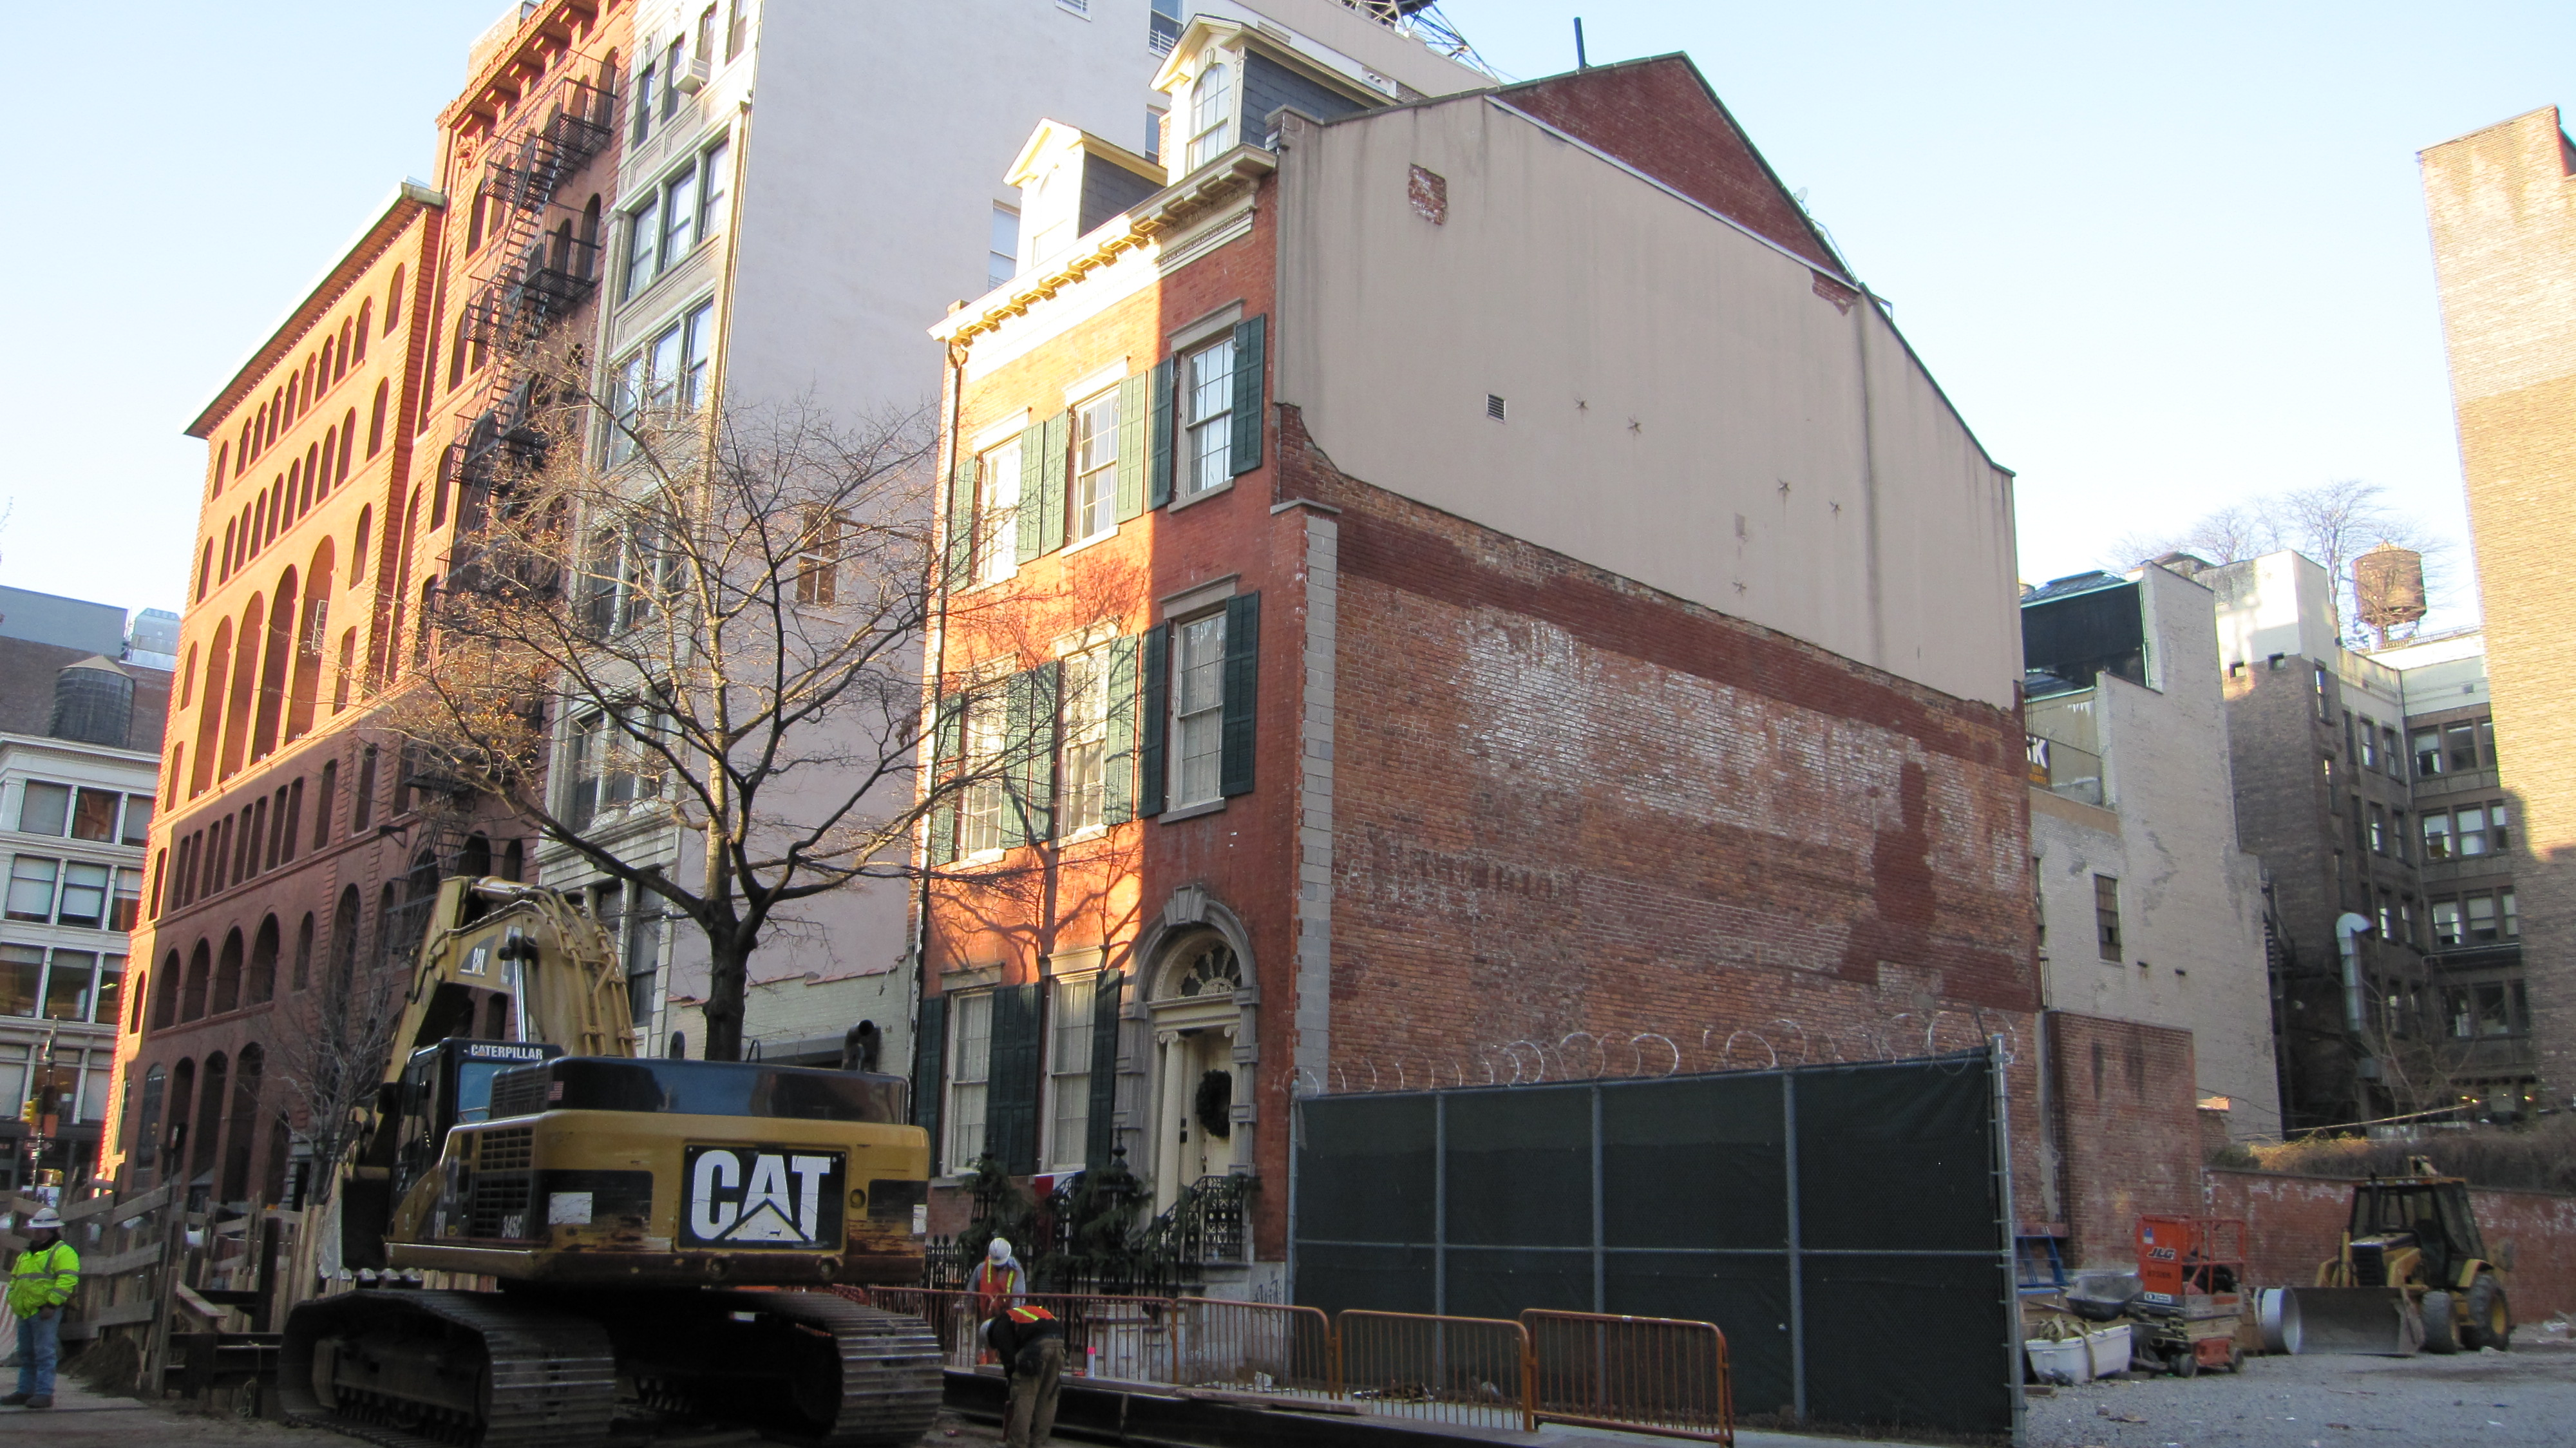 Water Tunnel Site on East 4th Street